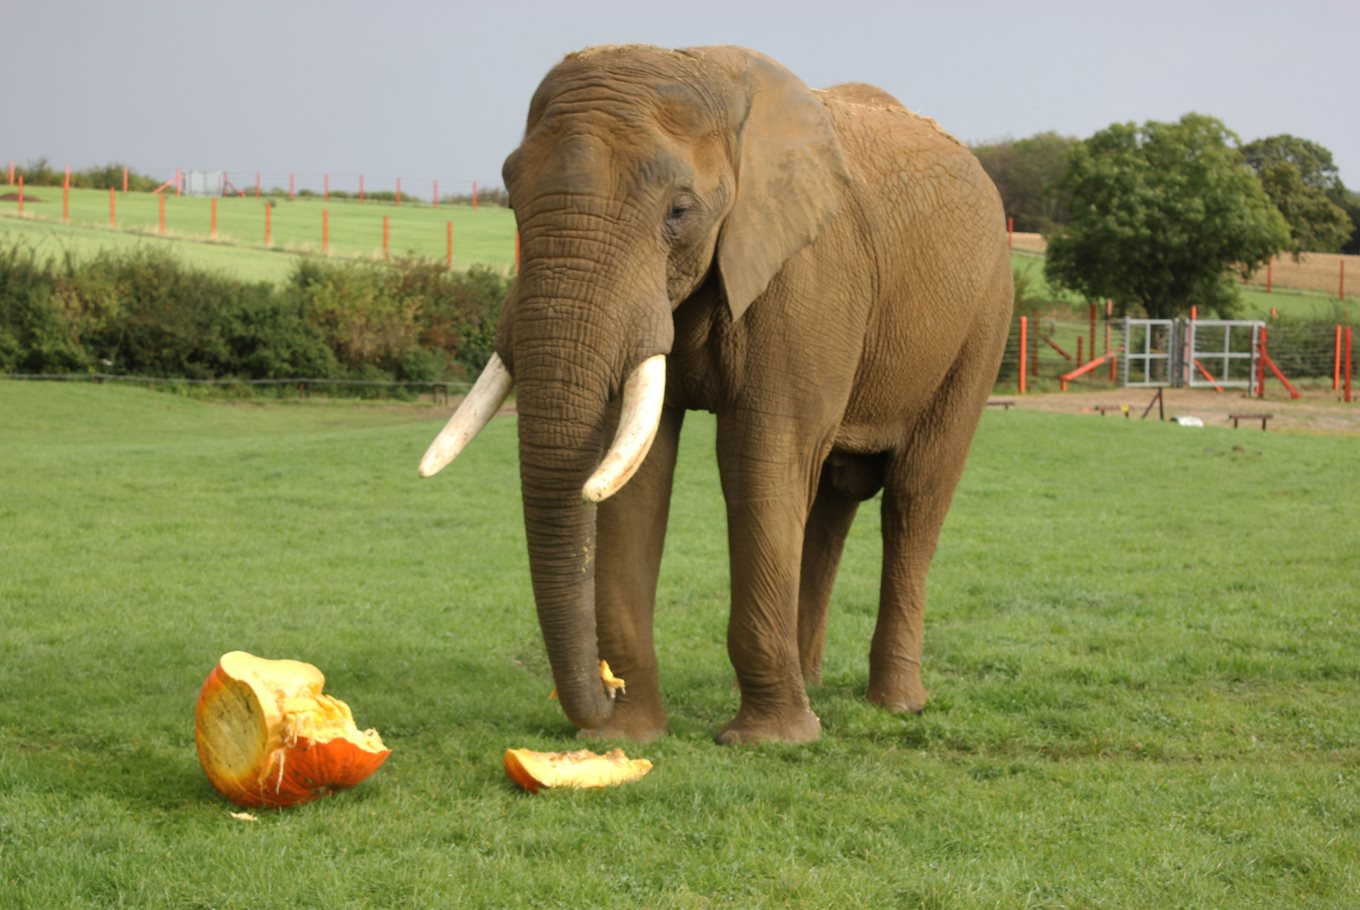 ELEPHANT SQUASHES 14 STONE PUMPKIN AT NOAH'S ARK ZOO FARM